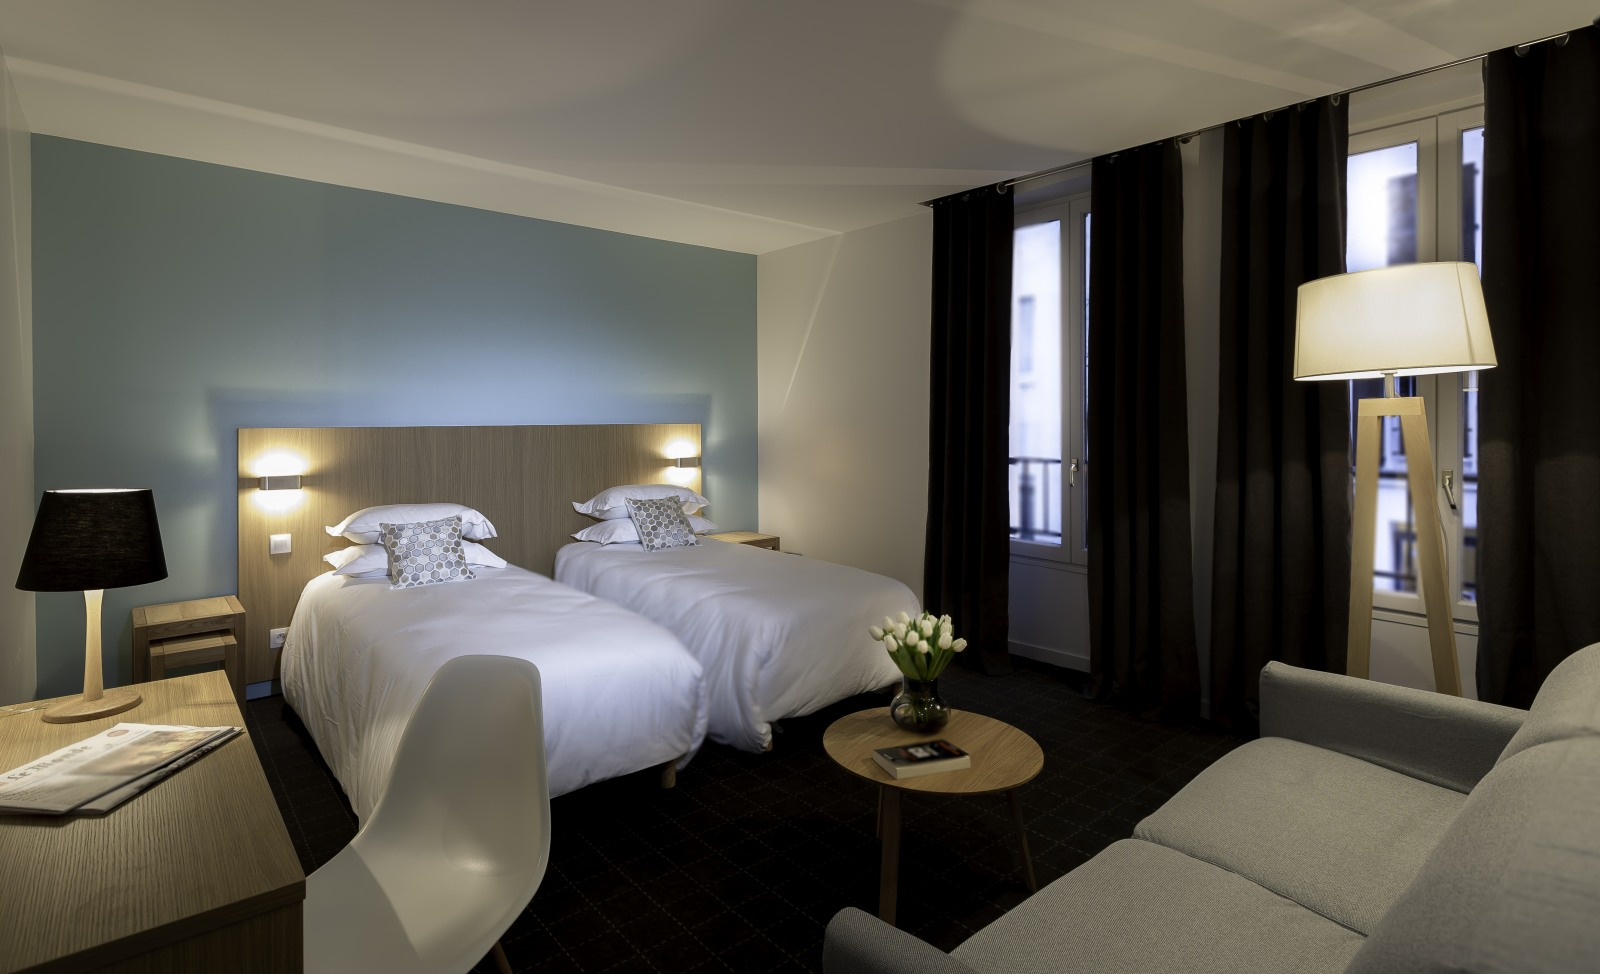 Hotel mirabeau eiffel site officiel hotels paris for Agence reservation hotel